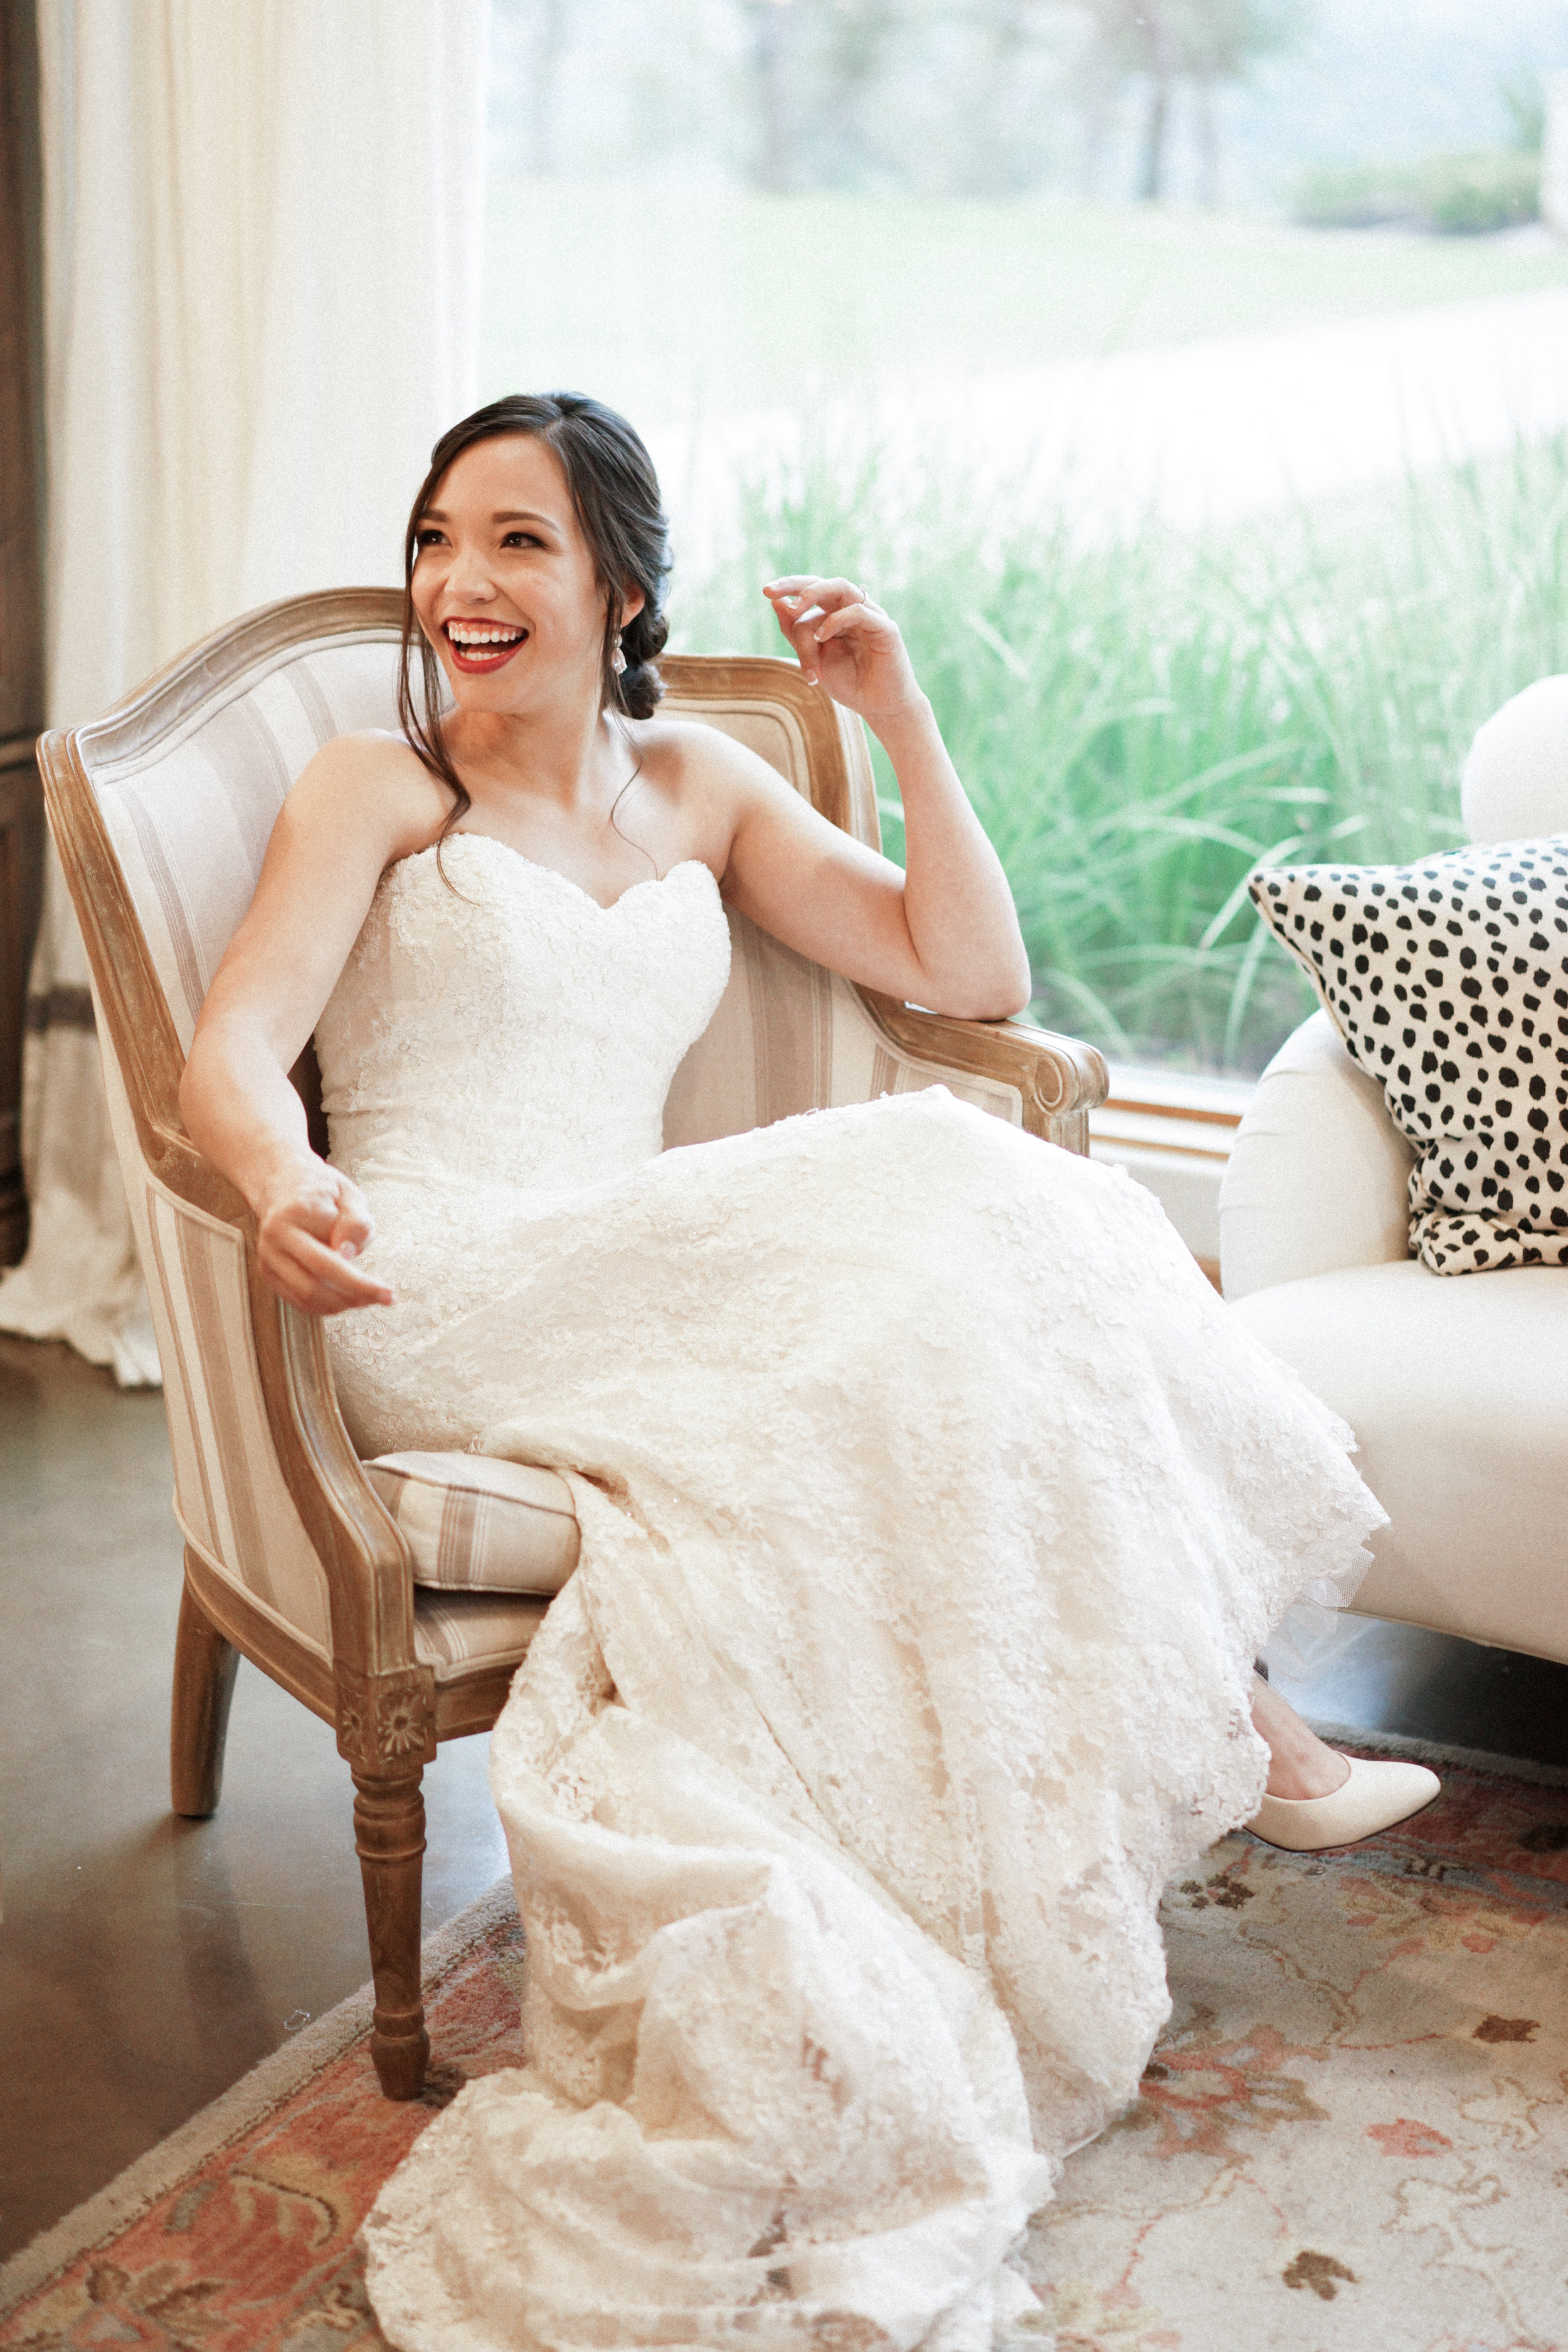 What a joyful bride in the beautiful bridal suite at Canyonwood Ridge!